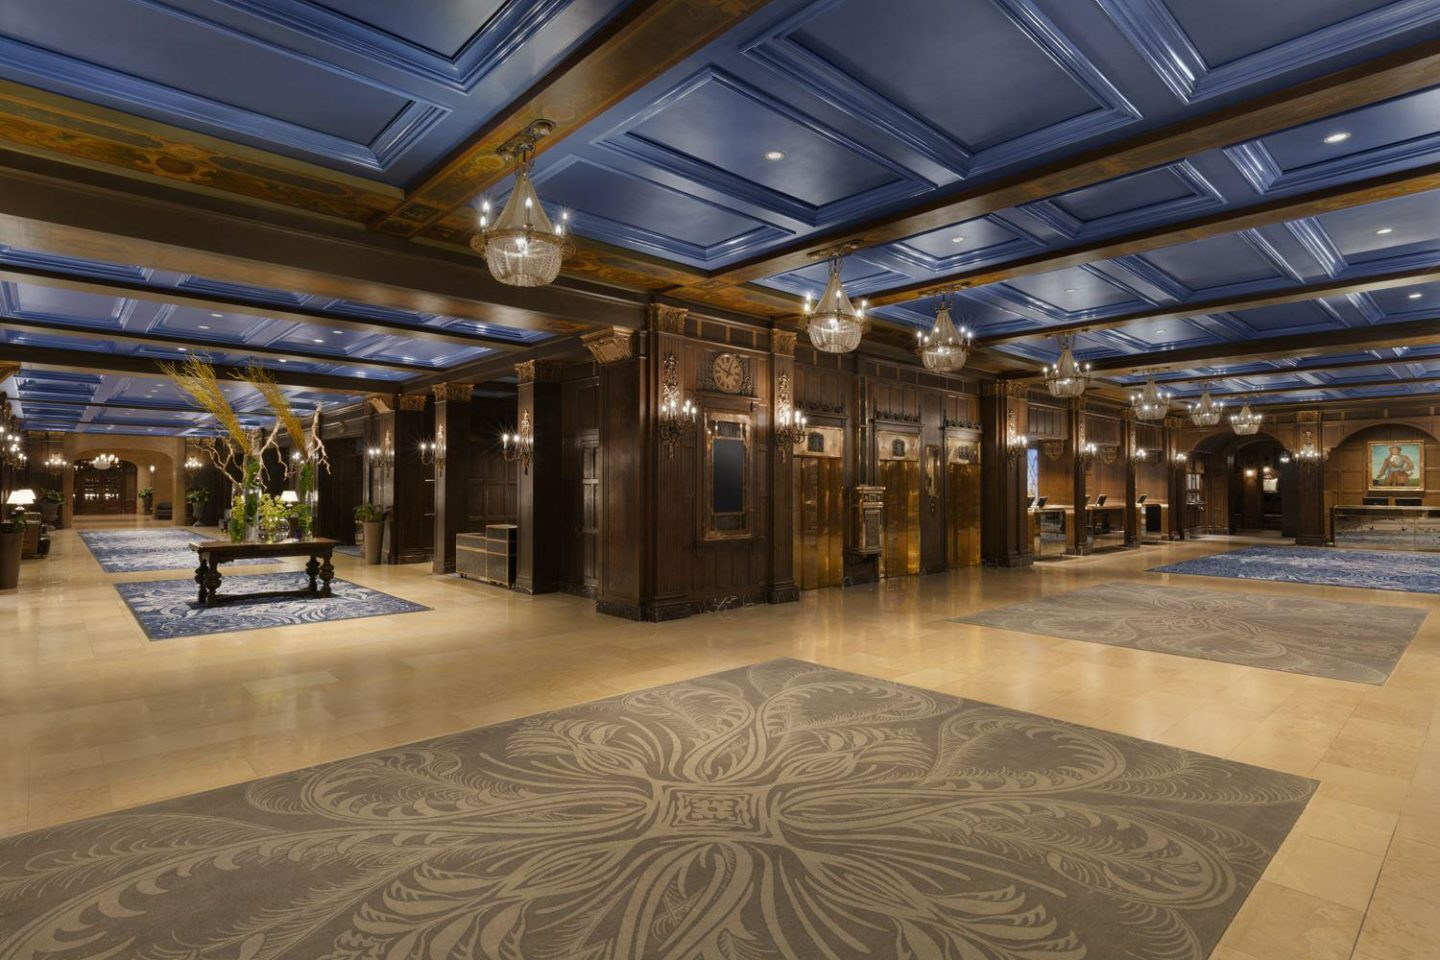 Stunning Lobby of the Fairmont Le Chateau Frontenac